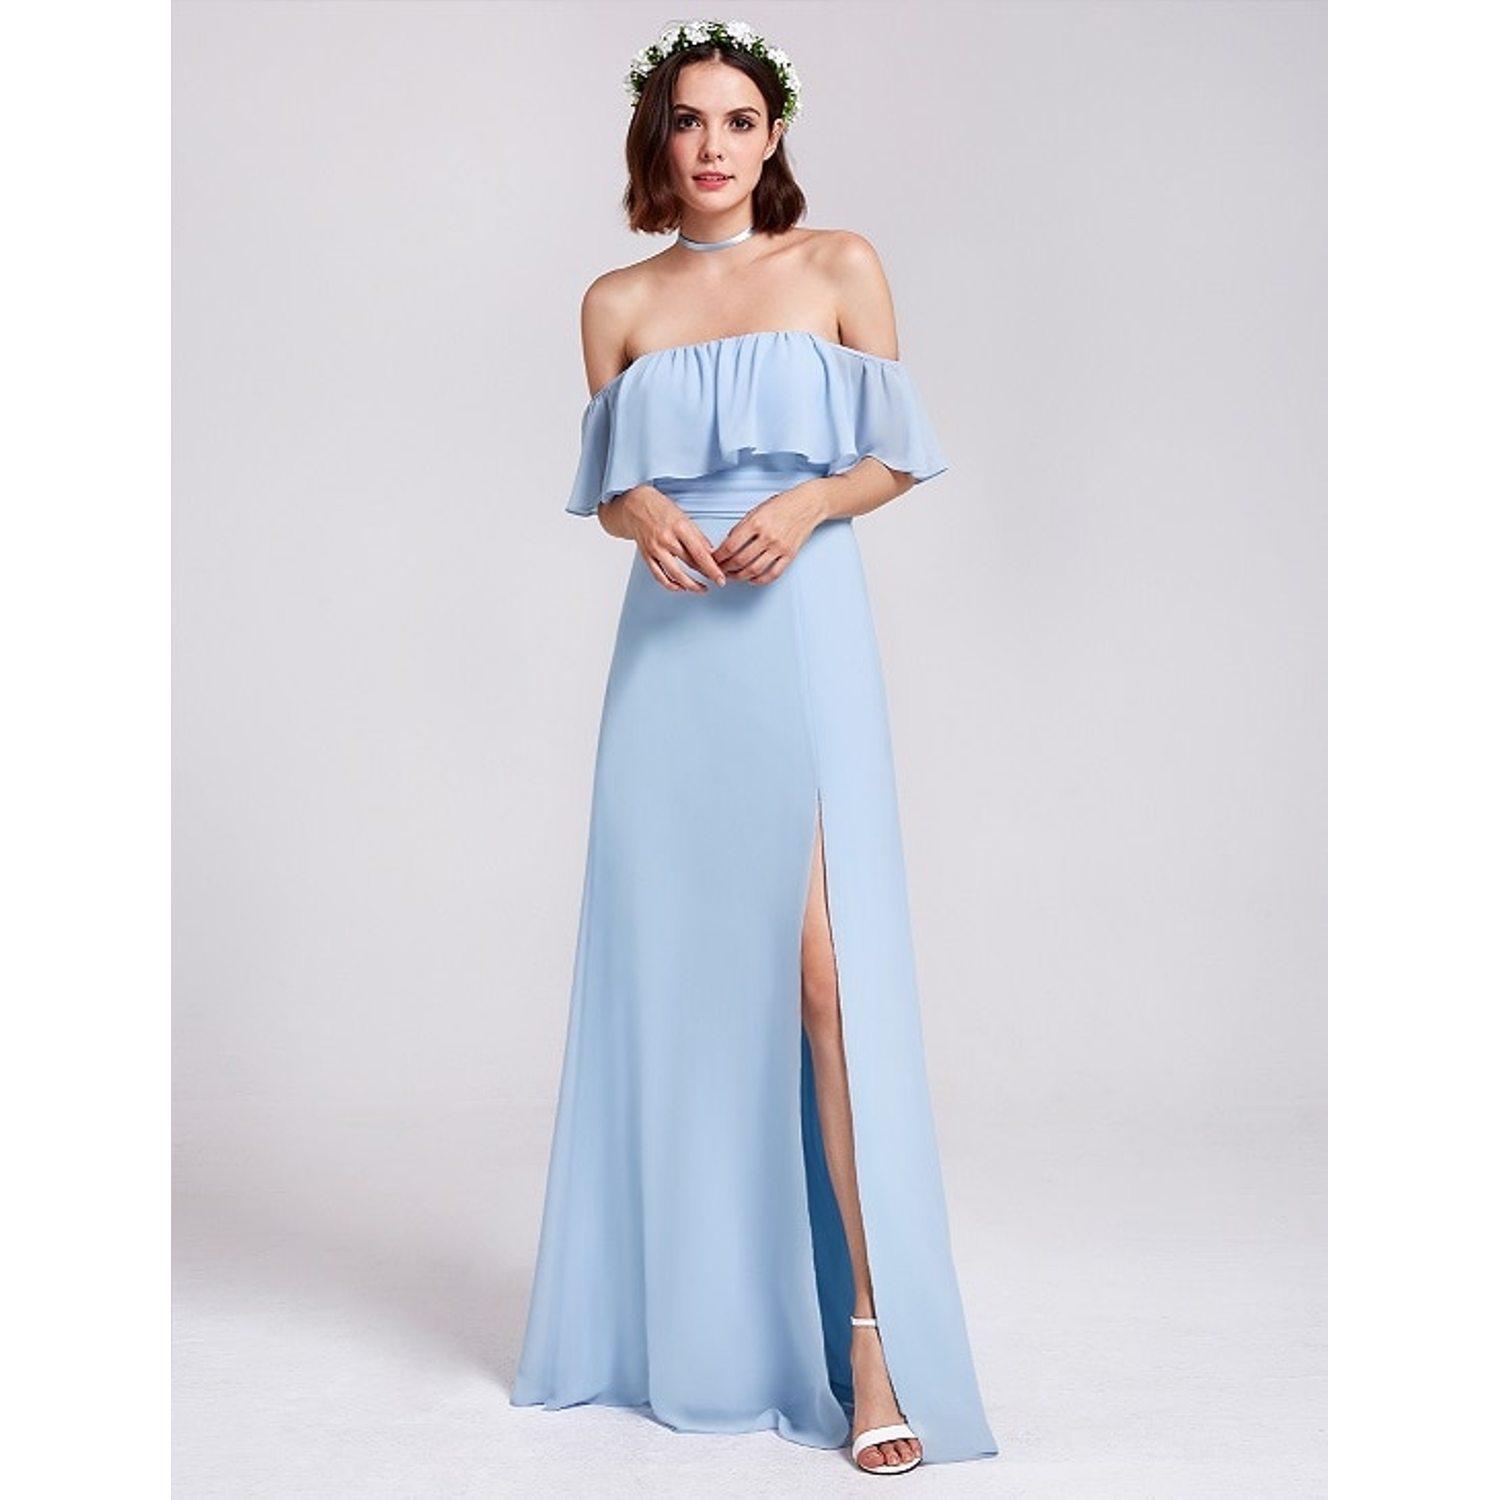 Bridesmaid dress with a slit